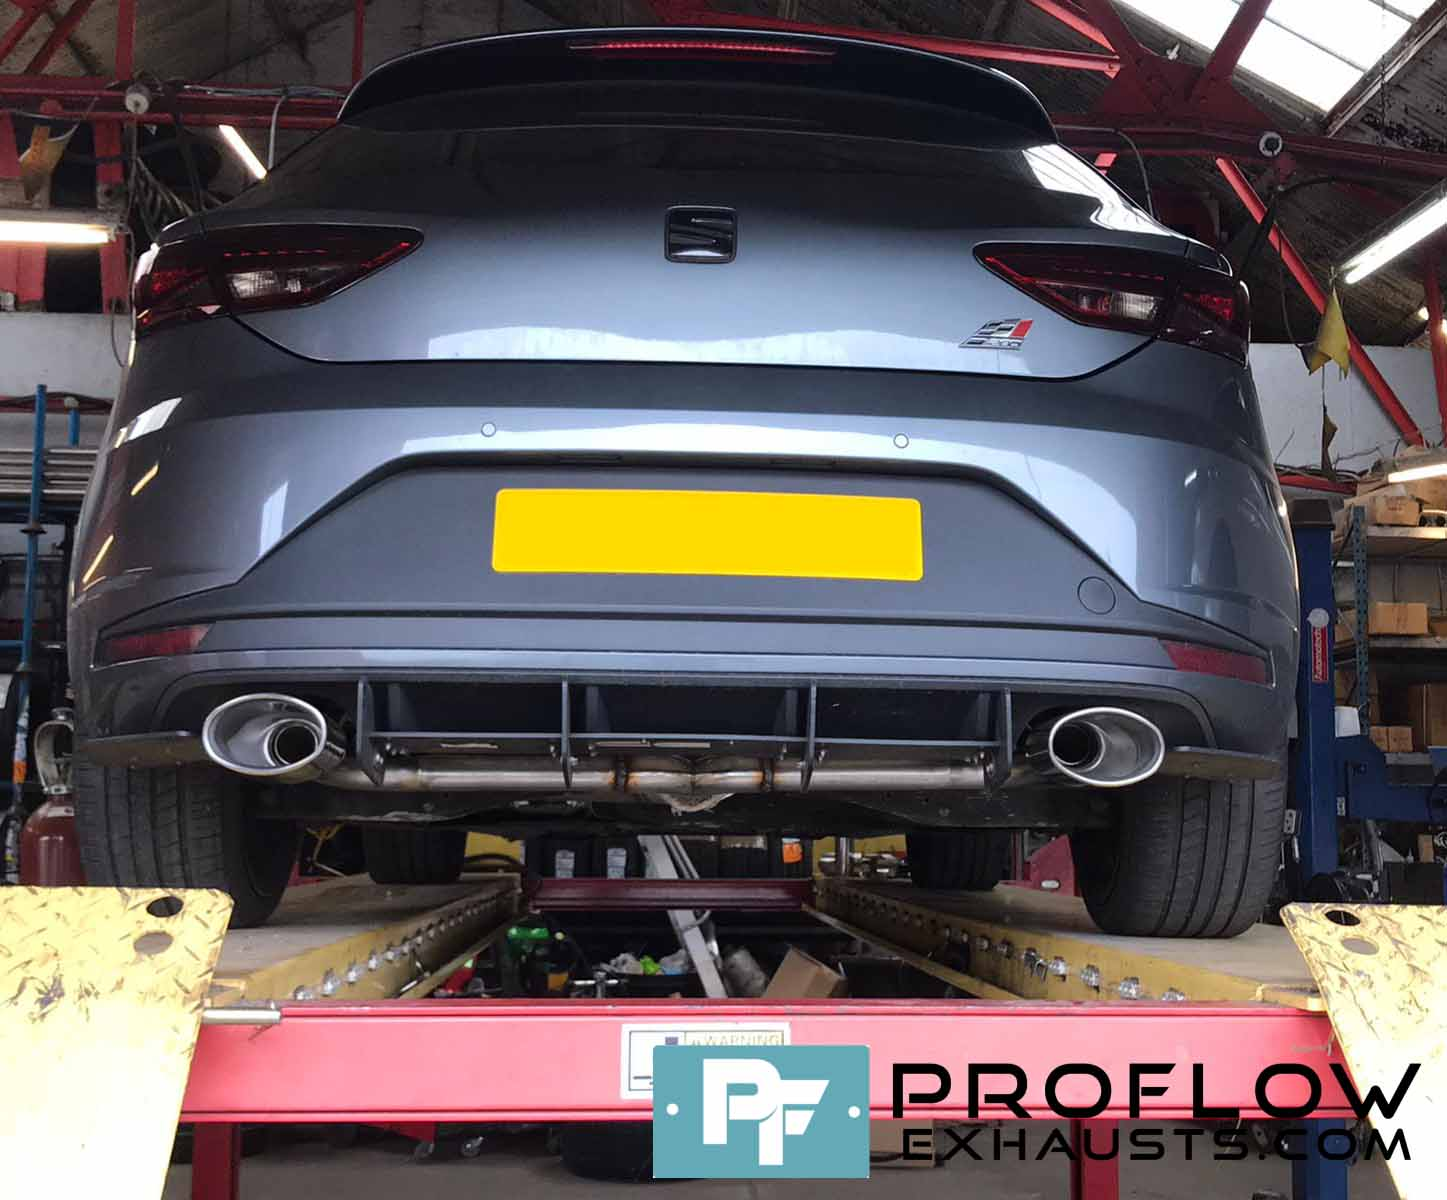 Seat Leon Custom Built Exhaust Middle and Back Box Delete with Dual Rear TX164 Tailpipes made from Stainless Steel